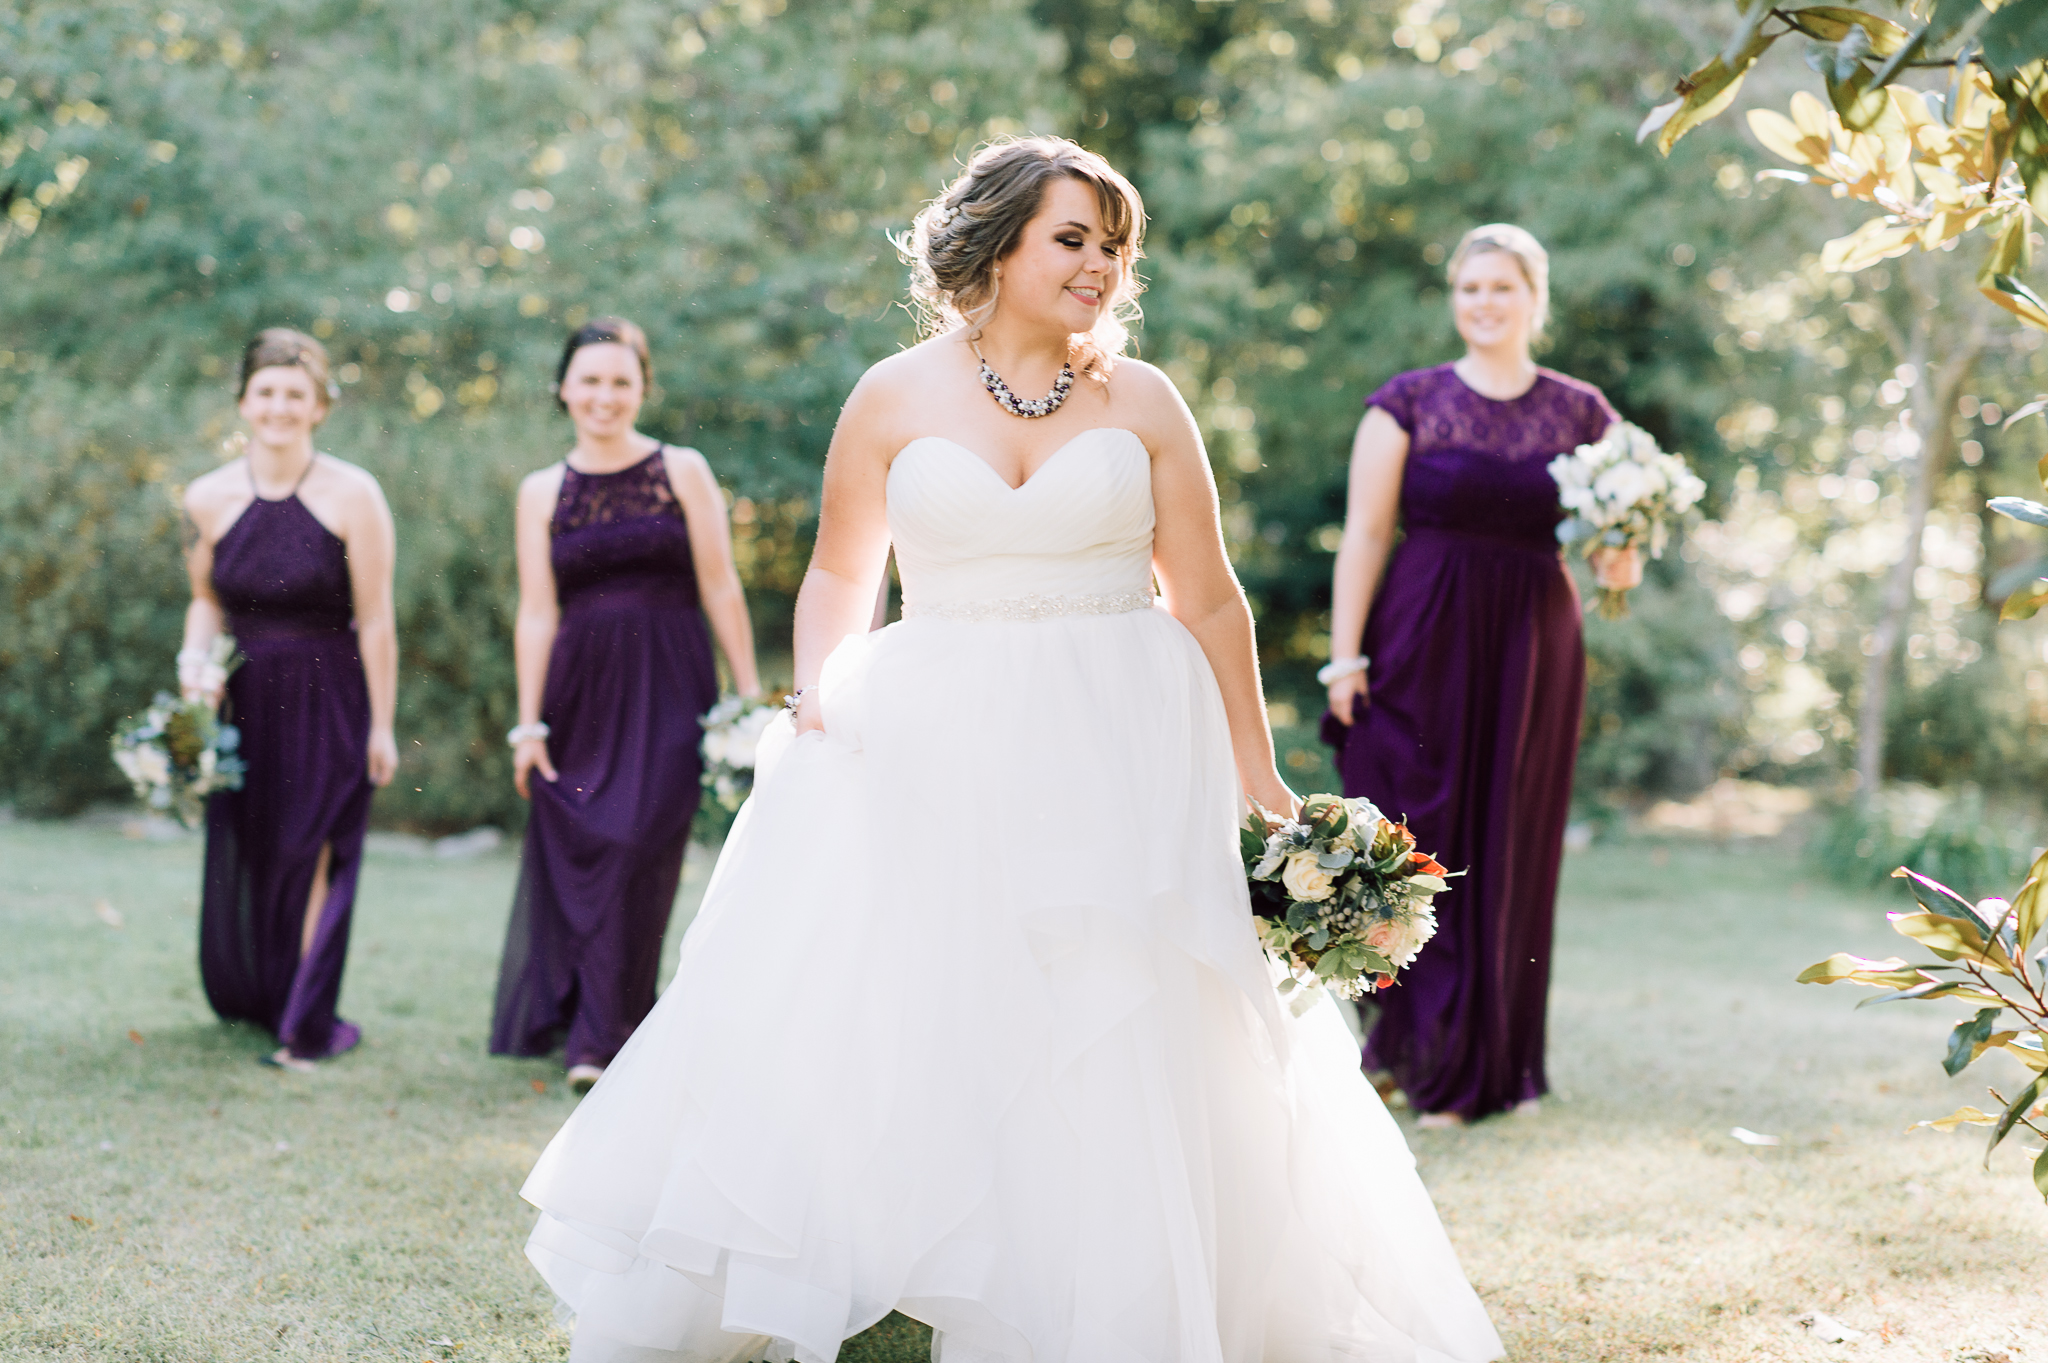 youseephotography_virginiawedding_fall_WallaceManor_EmilyCody (52).jpg